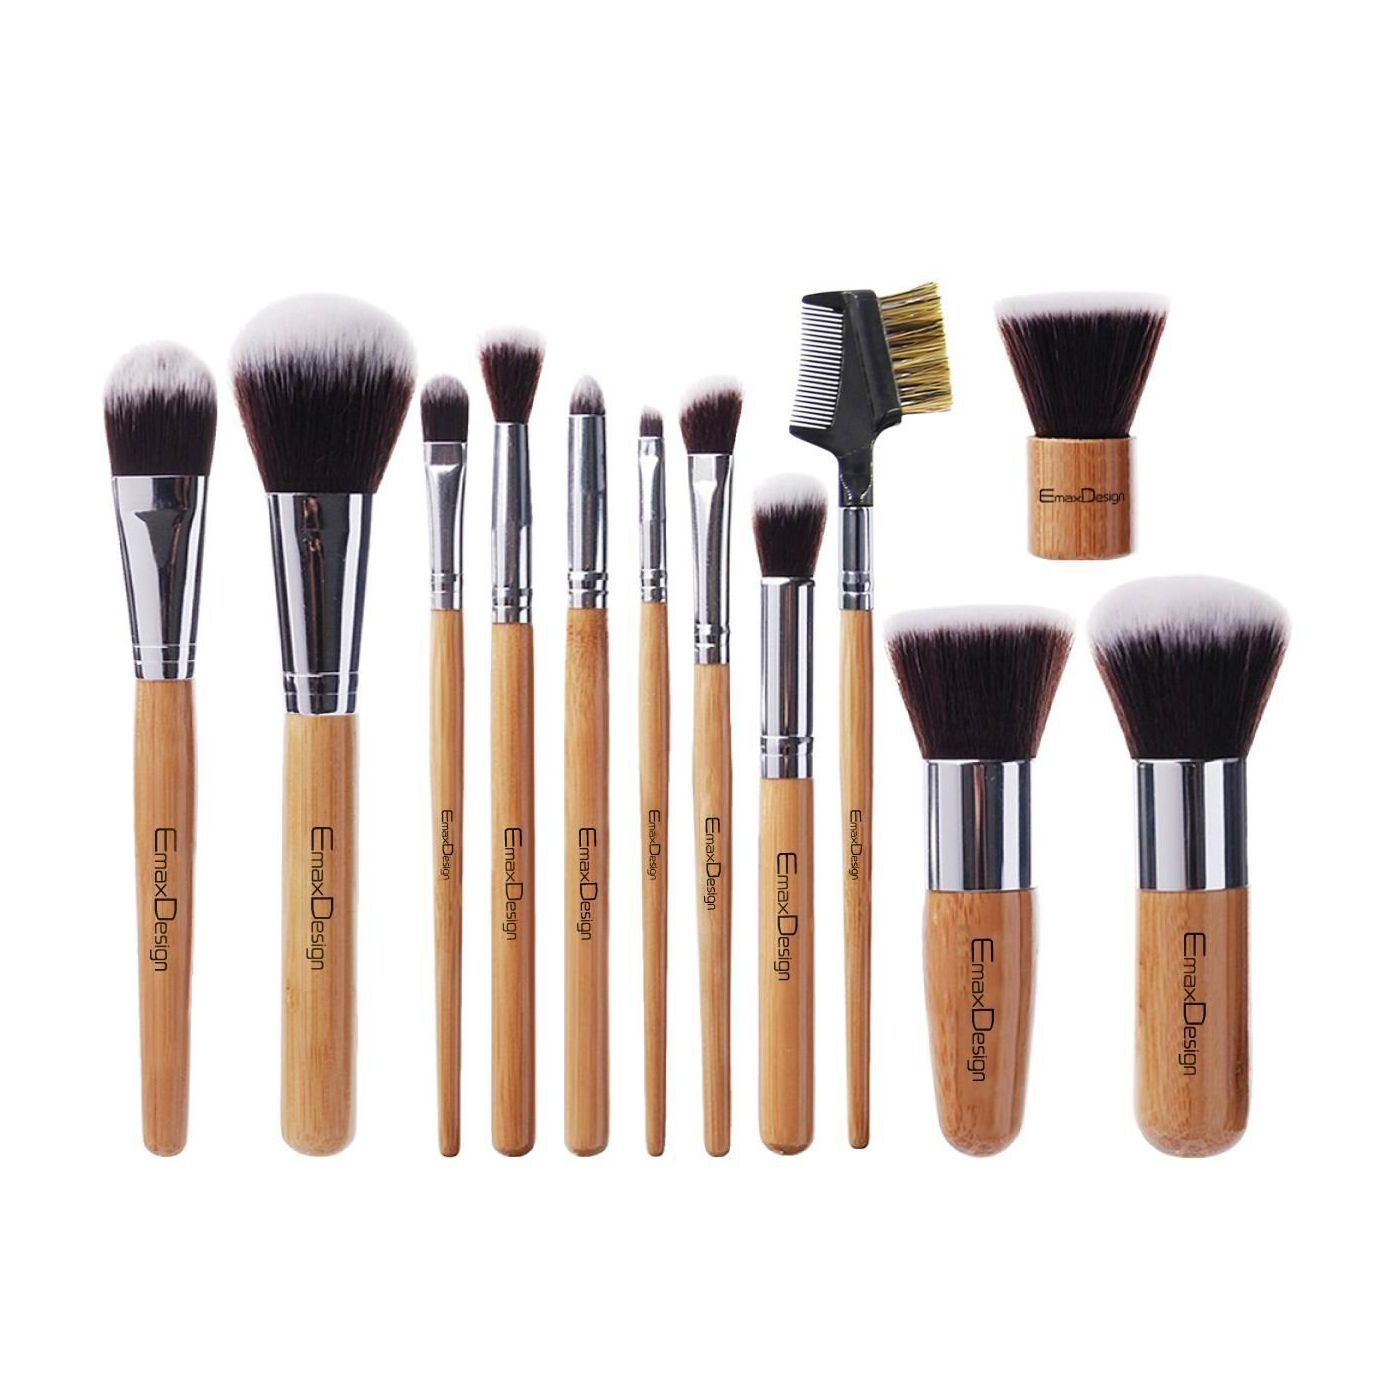 10 Best Makeup Brushes For Flawless Application Best Makeup Brush Sets 2021